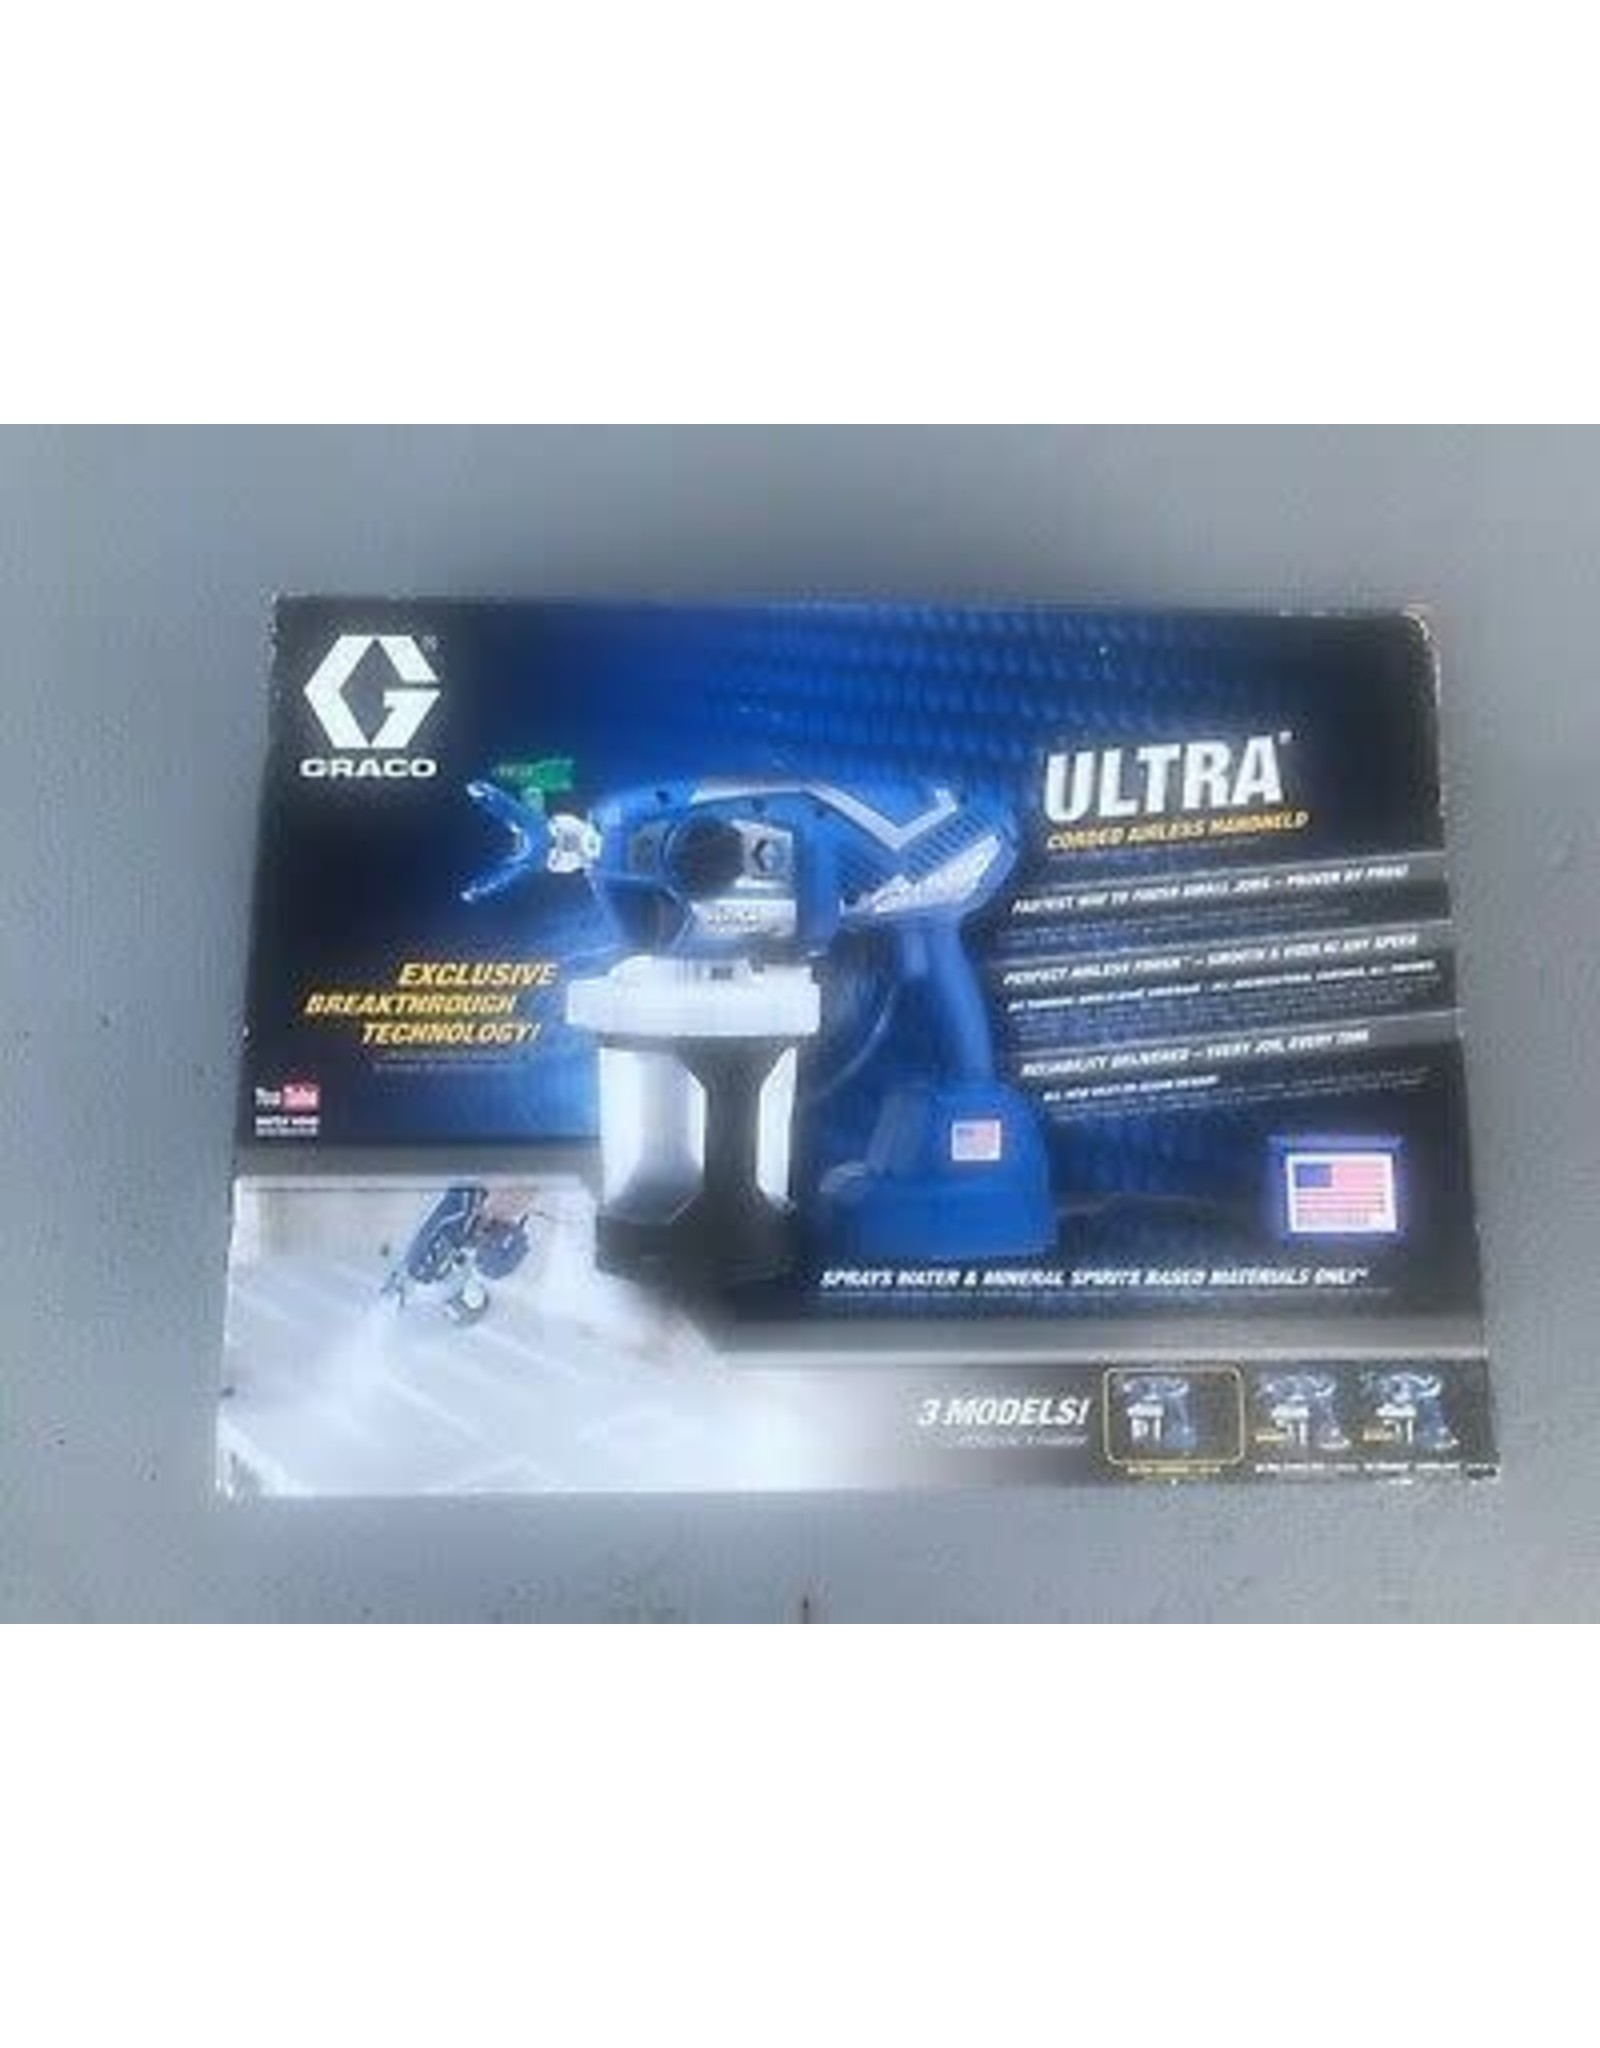 Graco 17M359 Ultra hand Held Corded 120 Volt